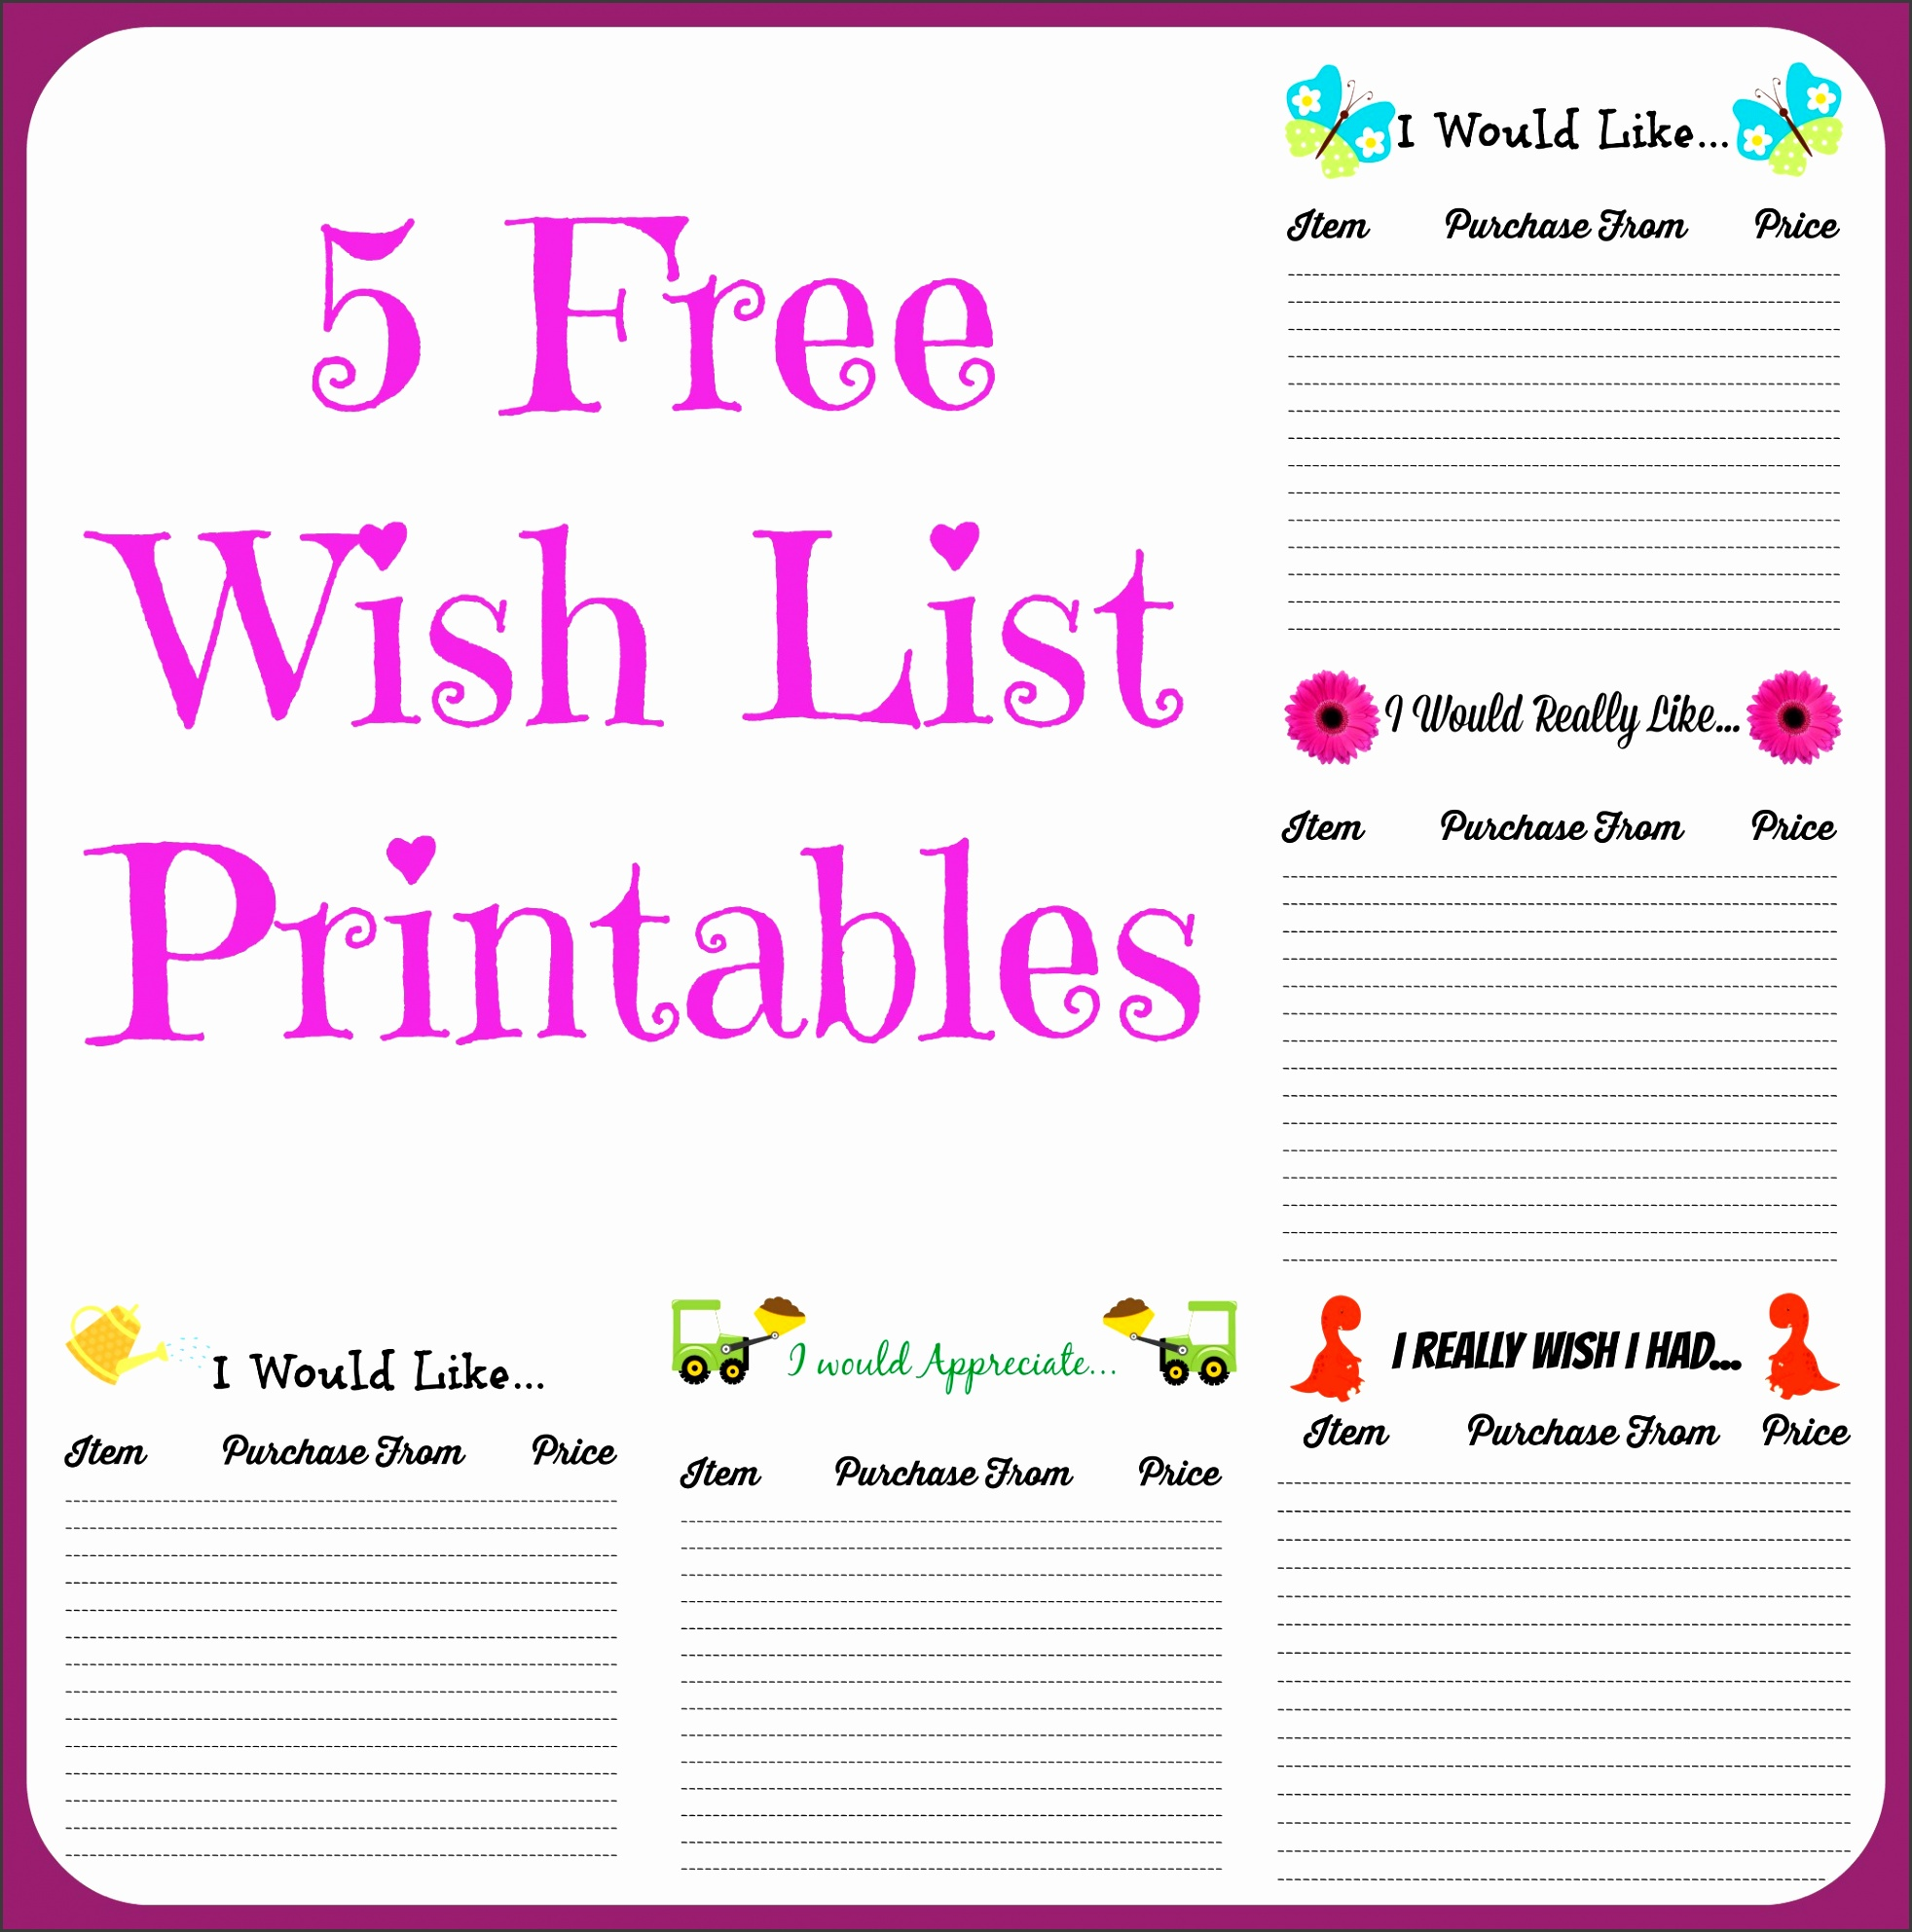 Christmas List Template Free Wish List Printables 5 Designs to Pick From Farmer S Wife Bunch Ideas Free